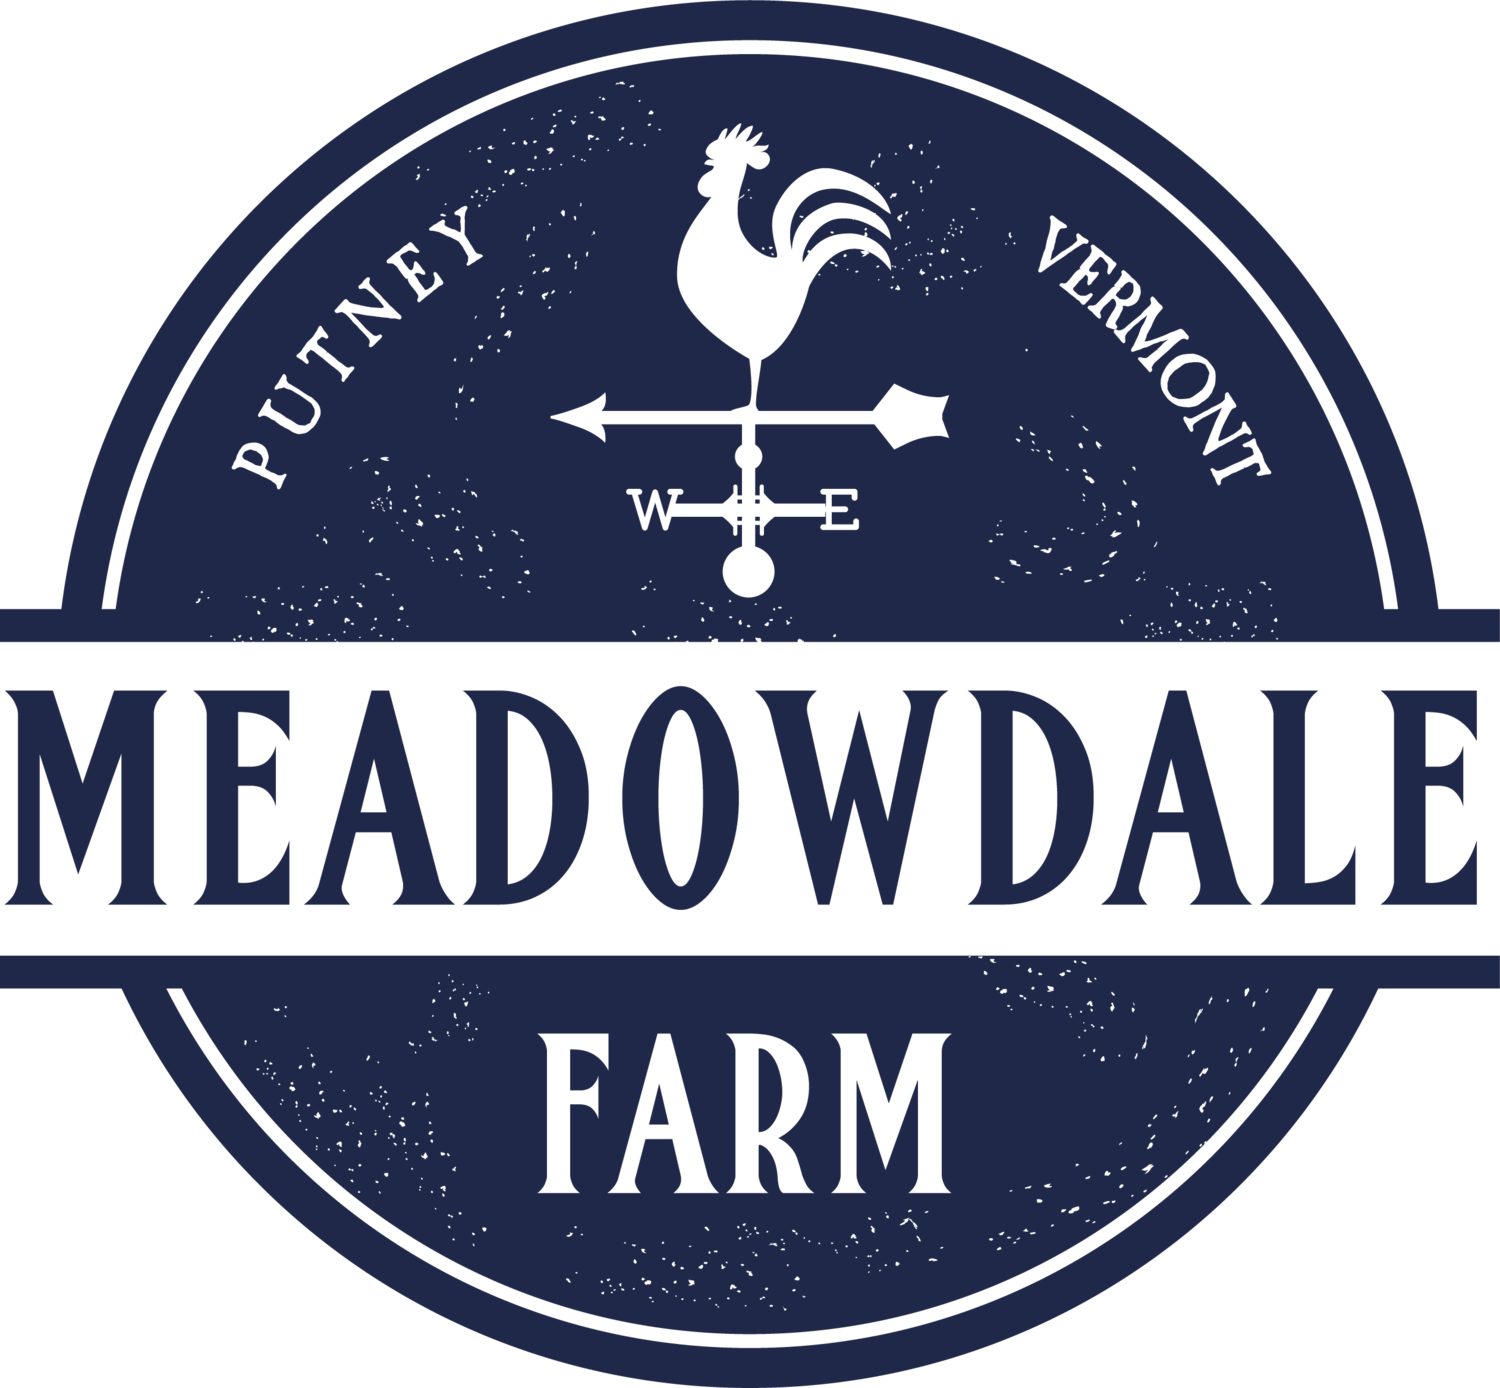 Meadowdale Farm